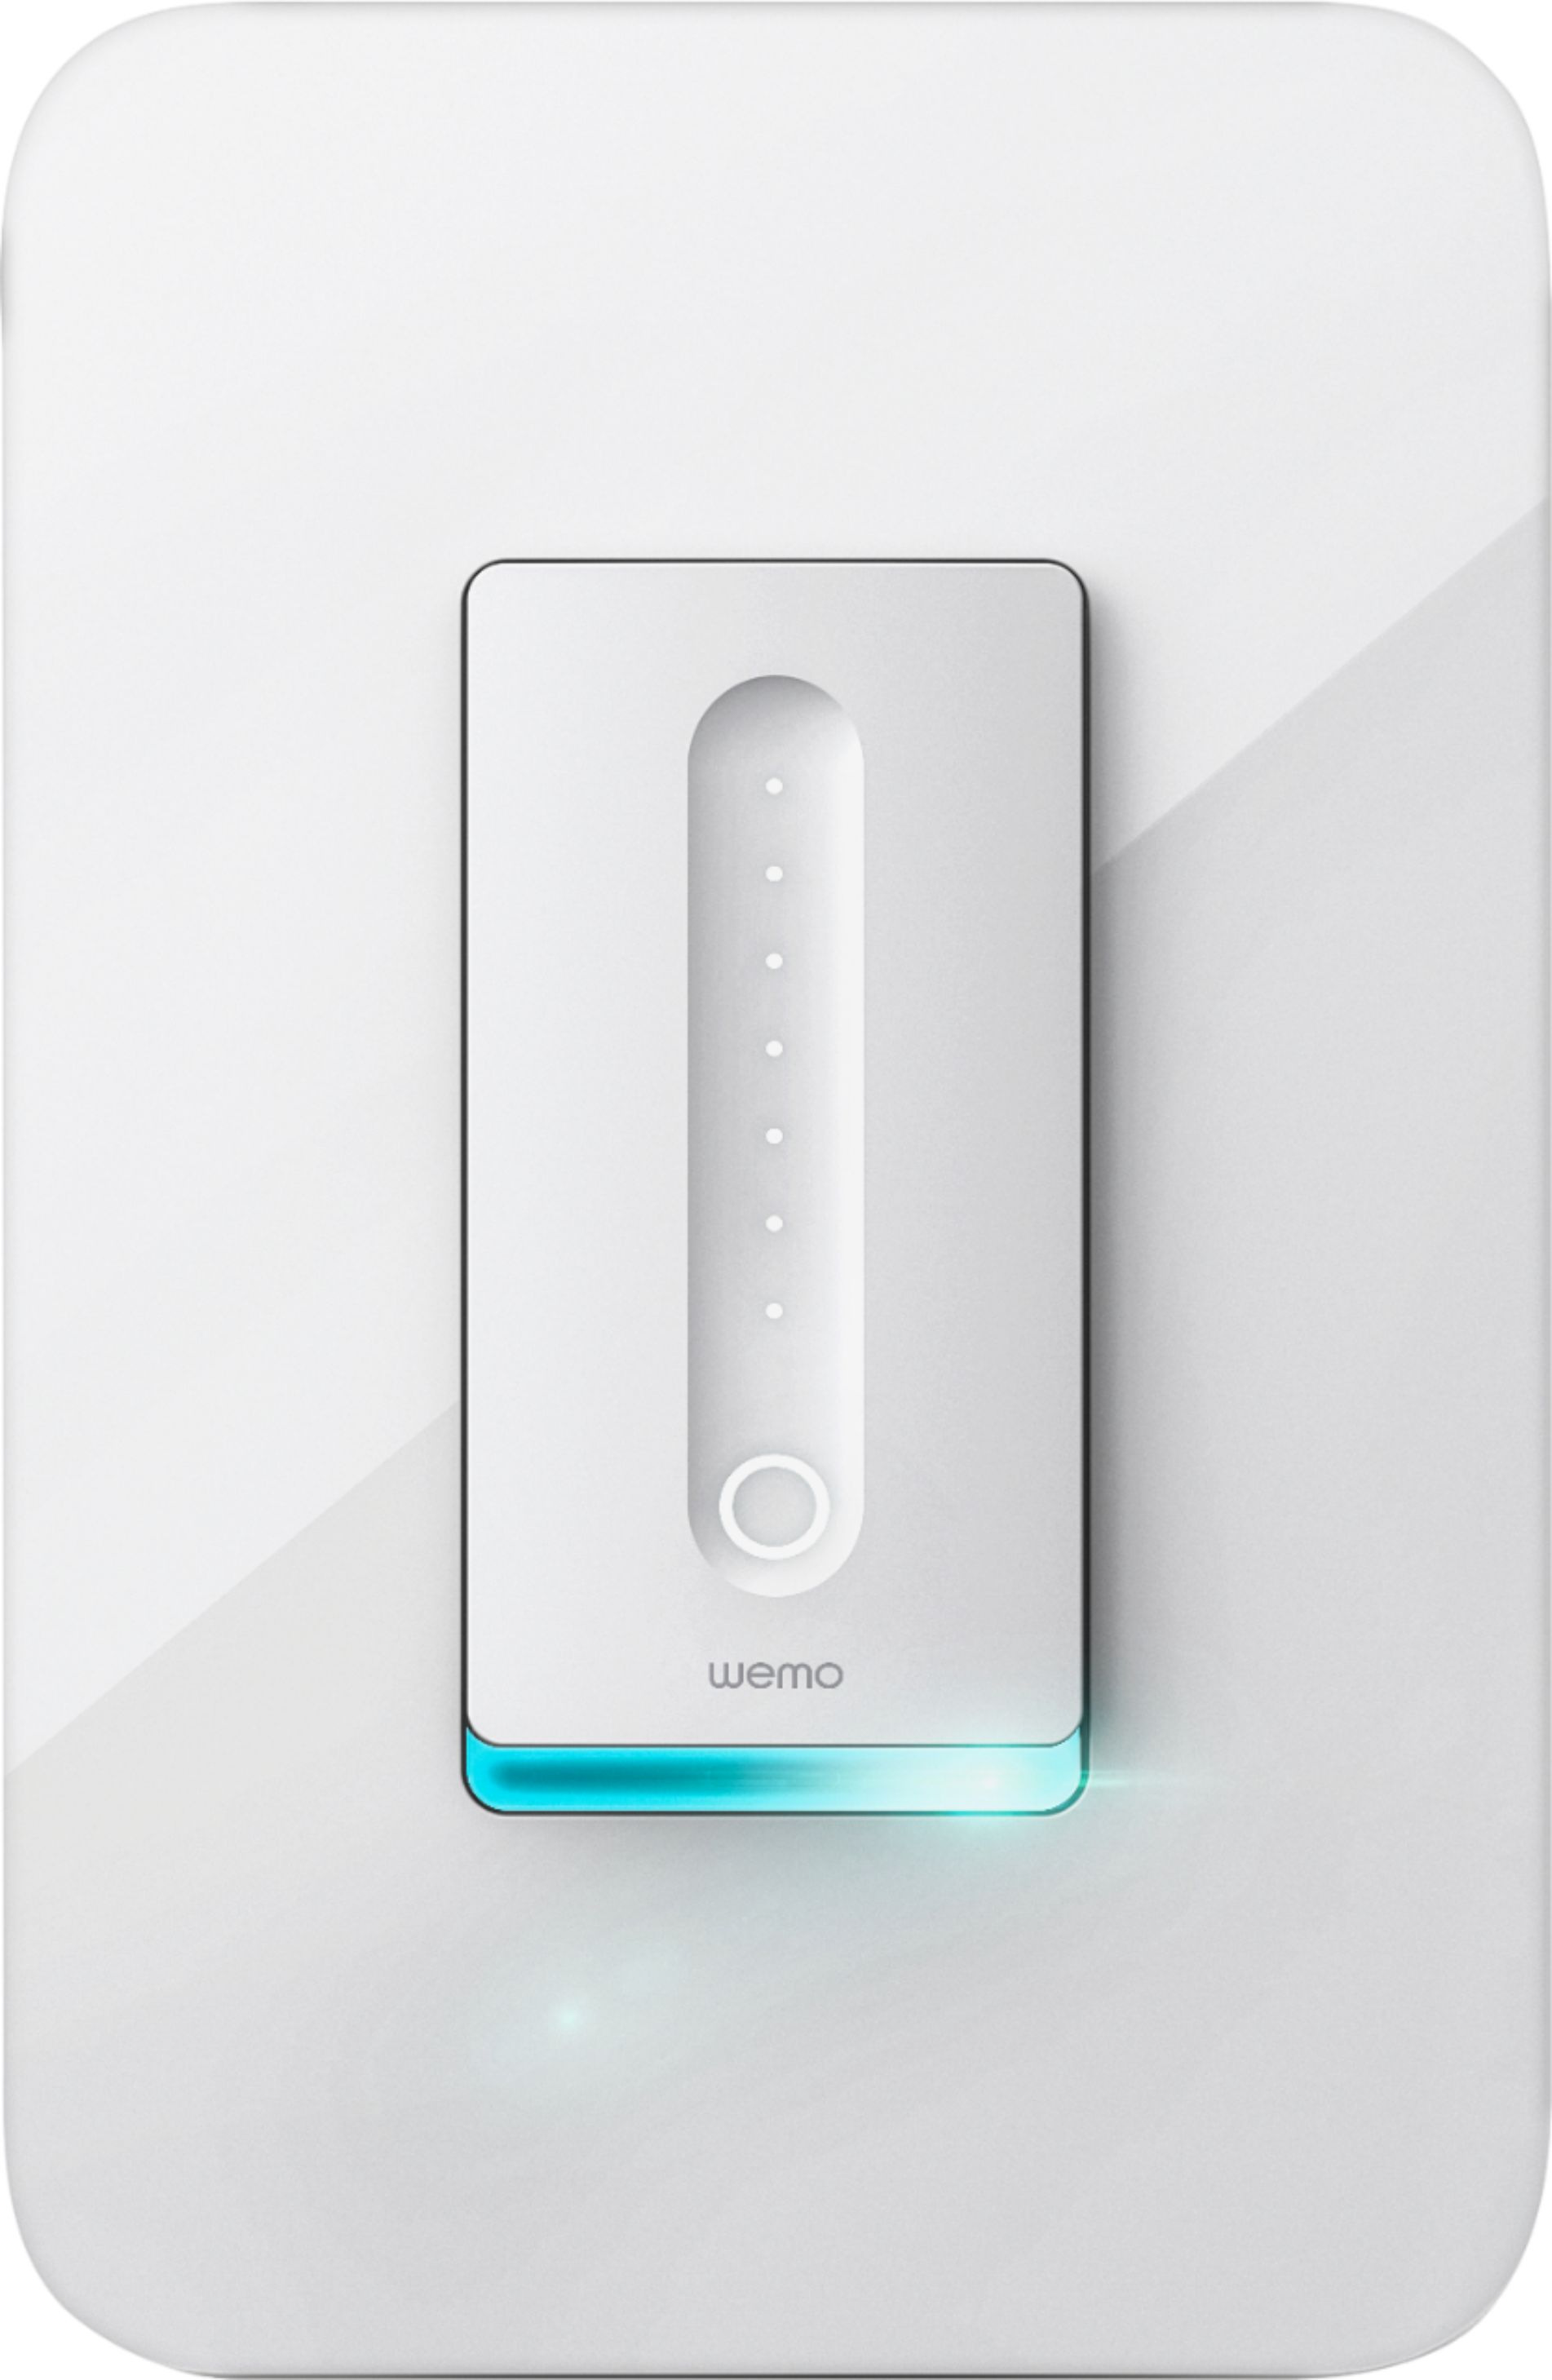 Dimmer Switch Wemo Wireless Dimmer Switch White